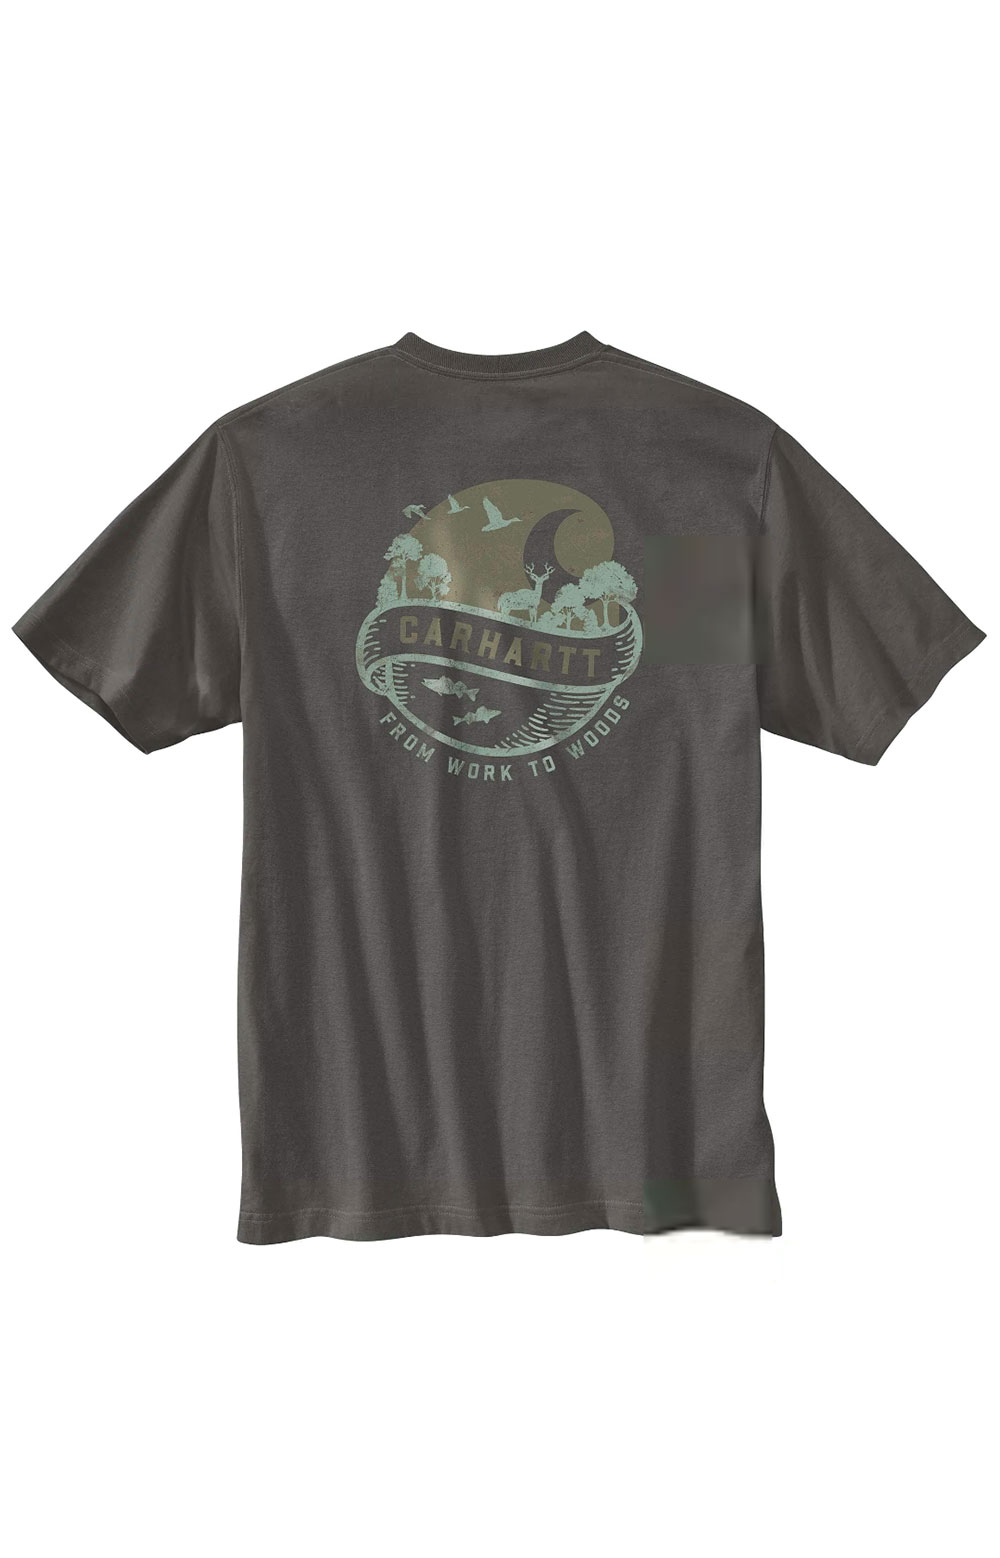 (104797) Loose Fit S/S Pocket Woods Graphic T-Shirt - Peat